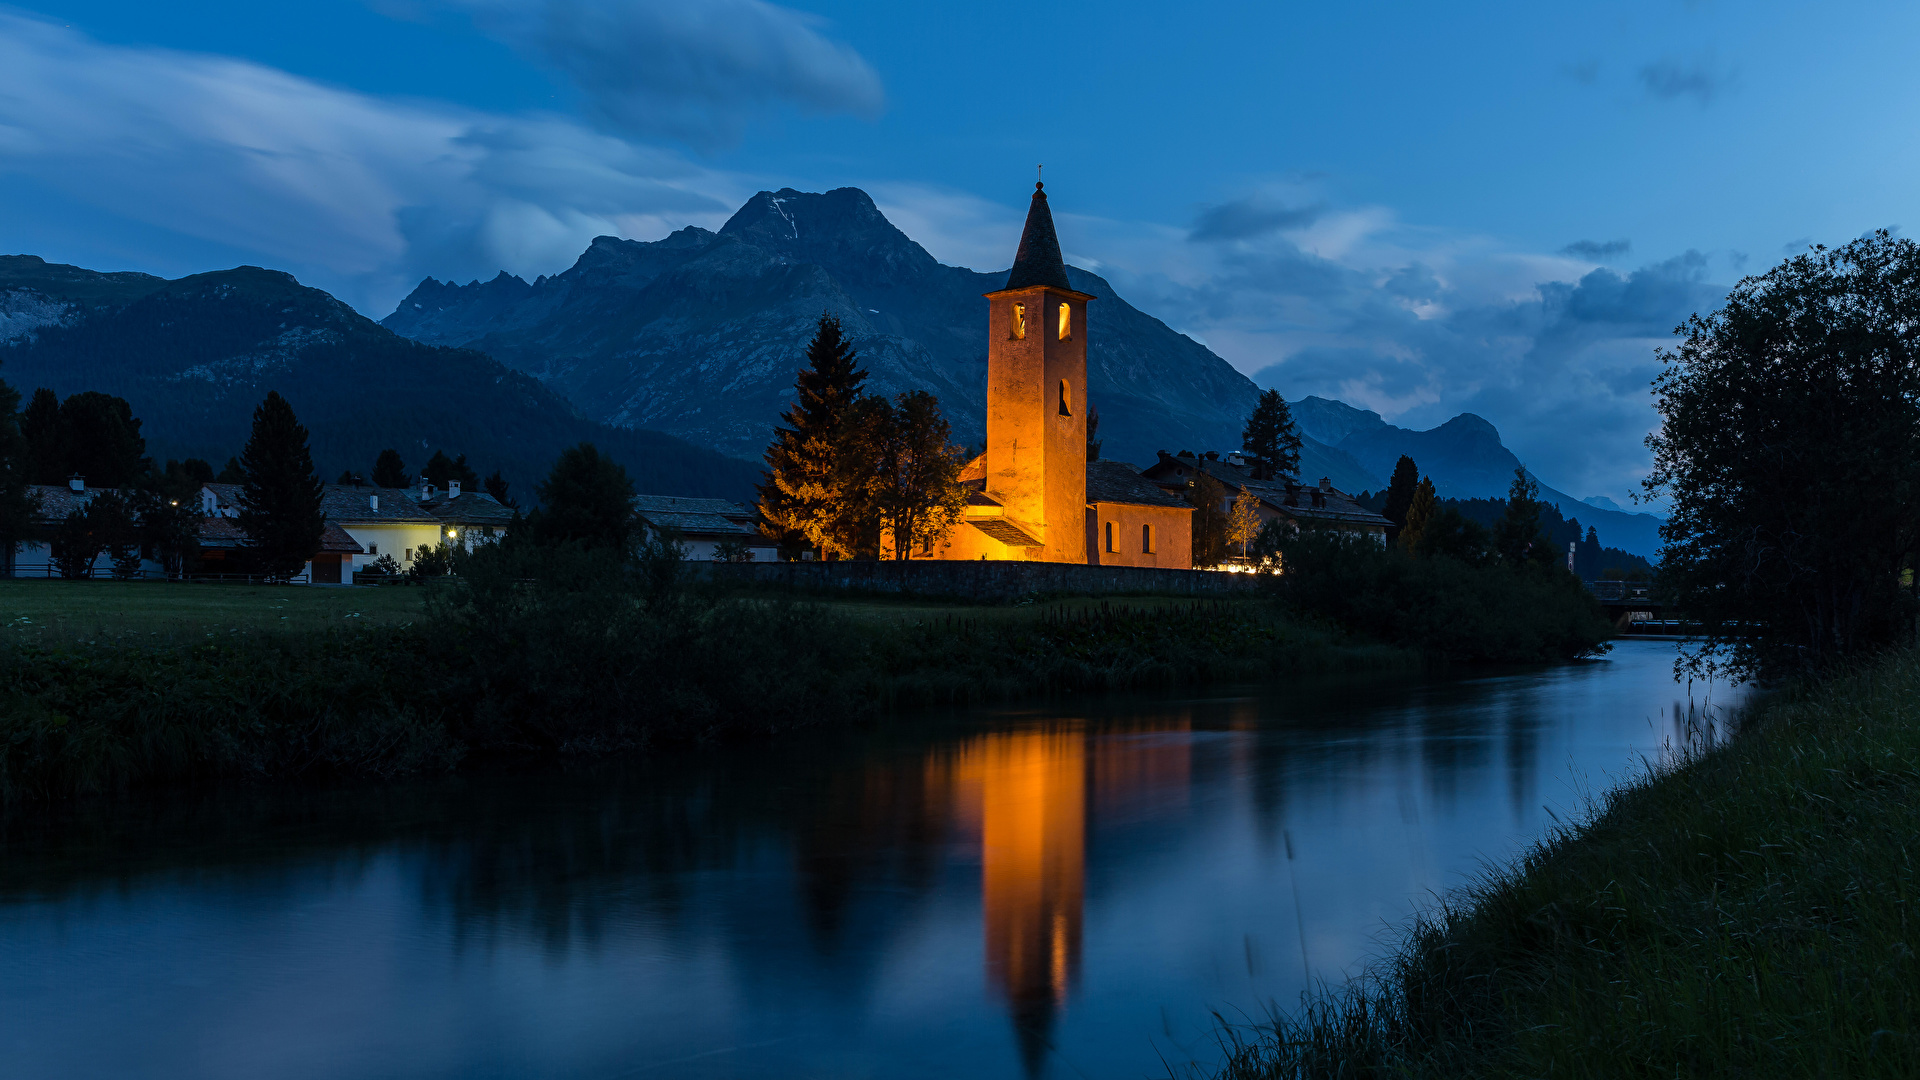 Wallpaper Switzerland Sils mountain river Temples night time Houses Cities 1920x1080 Mountains Night temple Rivers Building